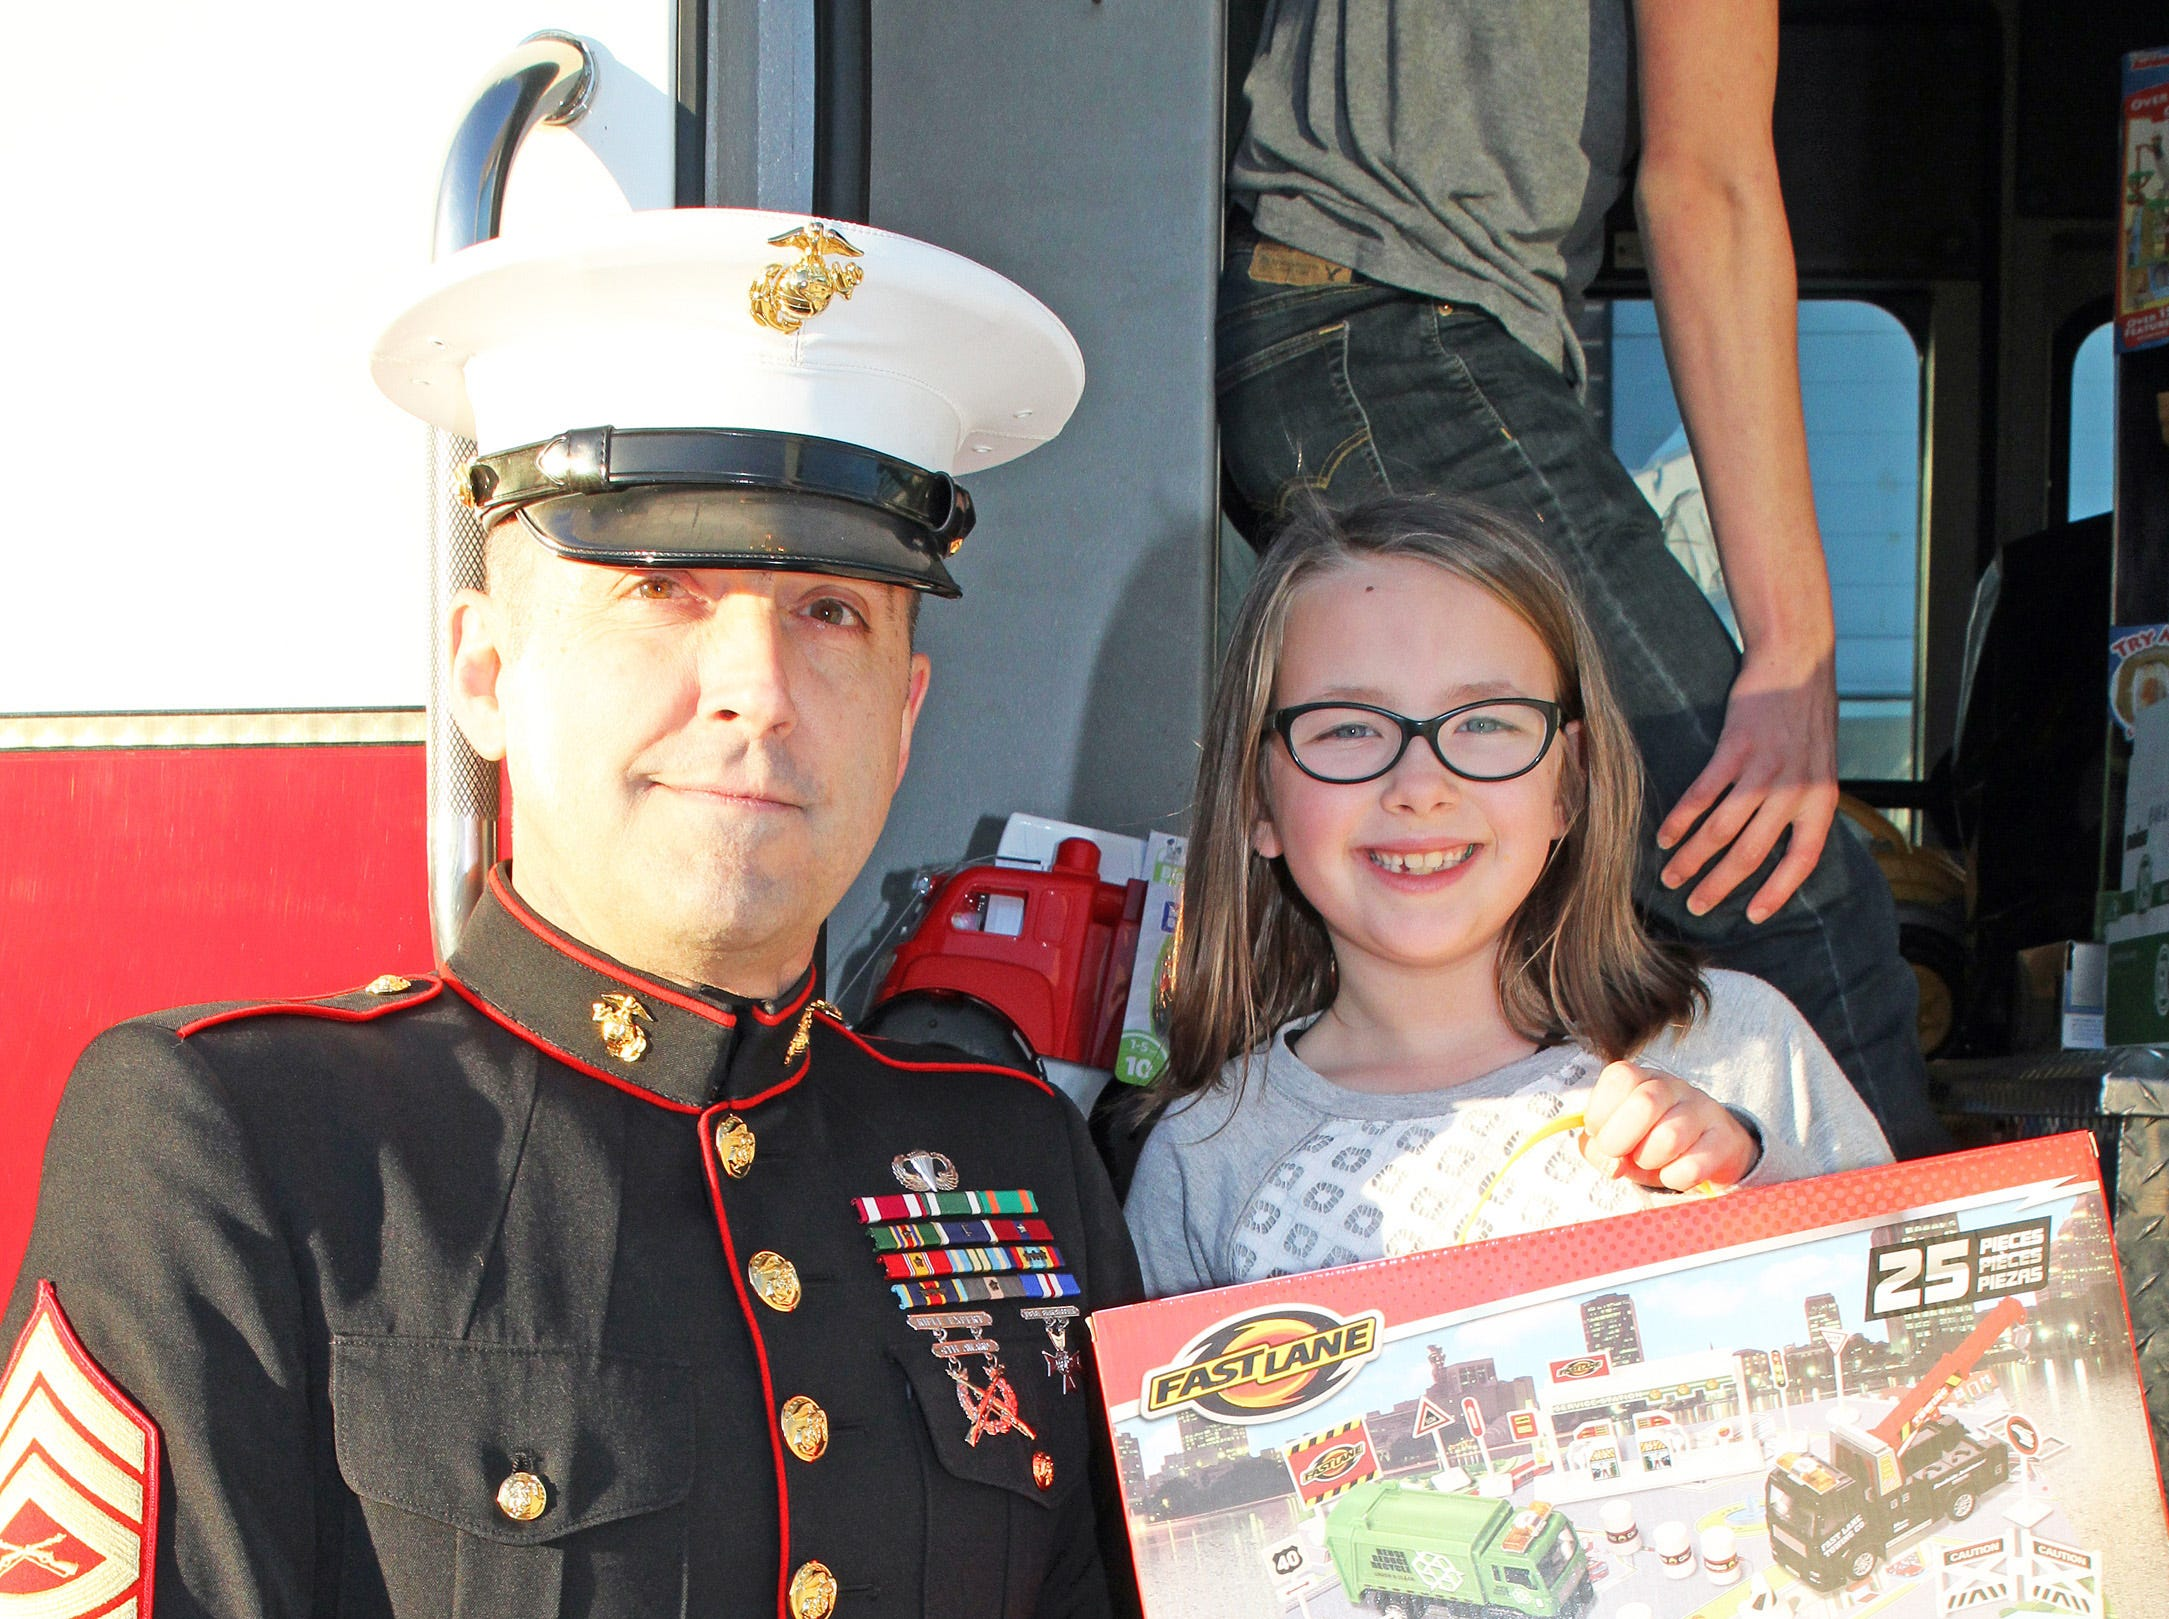 Audrey Dowell, 7, of Ankeny helps retired Marine Gunnery Sgt. Mark Amann, current member of the Ankeny Fire Department, as gifts are dropped off at Ankeny's fill the truck day during the U.S. Marine Corps Toys for Tots campaign at the Ankeny Fire Station Headquarters on Sunday, Dec. 16, 2018.